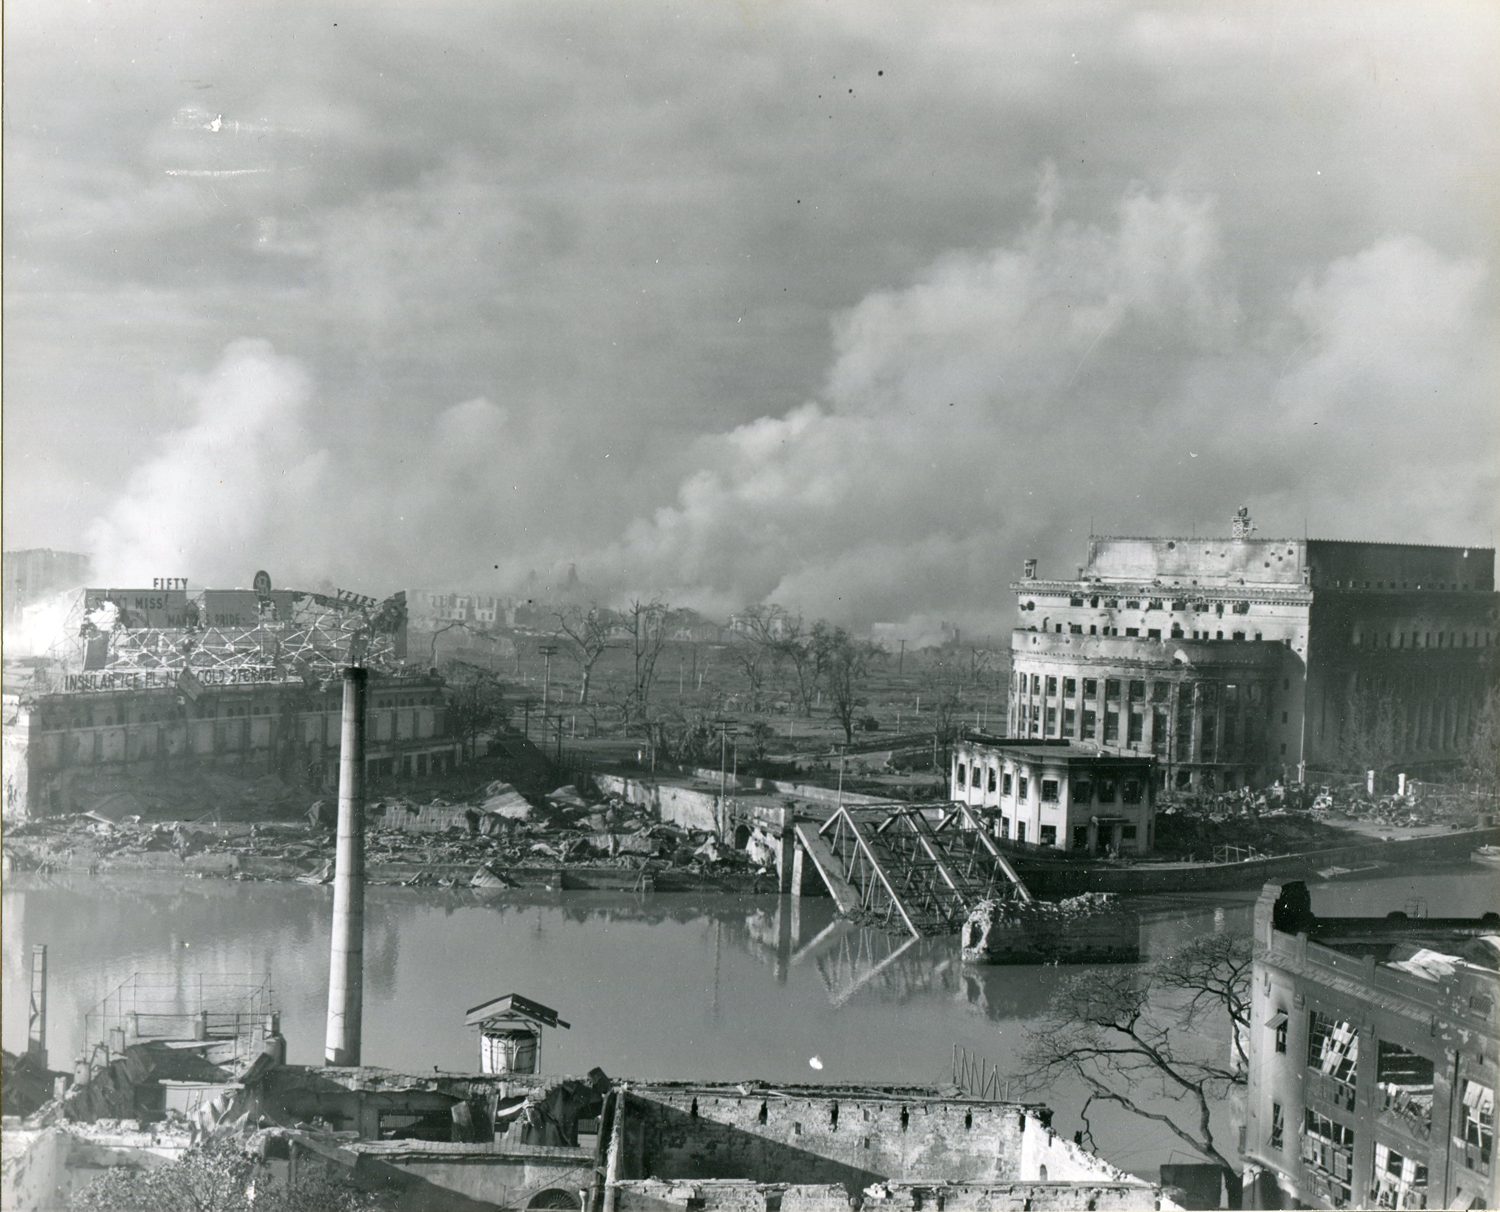 The dark smoke from artillery fire wafts across the ruins of southern Manila on the morning of February 23, 1945, as American troops prepare to assault the Walled City. Pictured on the right are the battered General Post Office and the remains of the Santa Cruz Bridge. (National Archives)